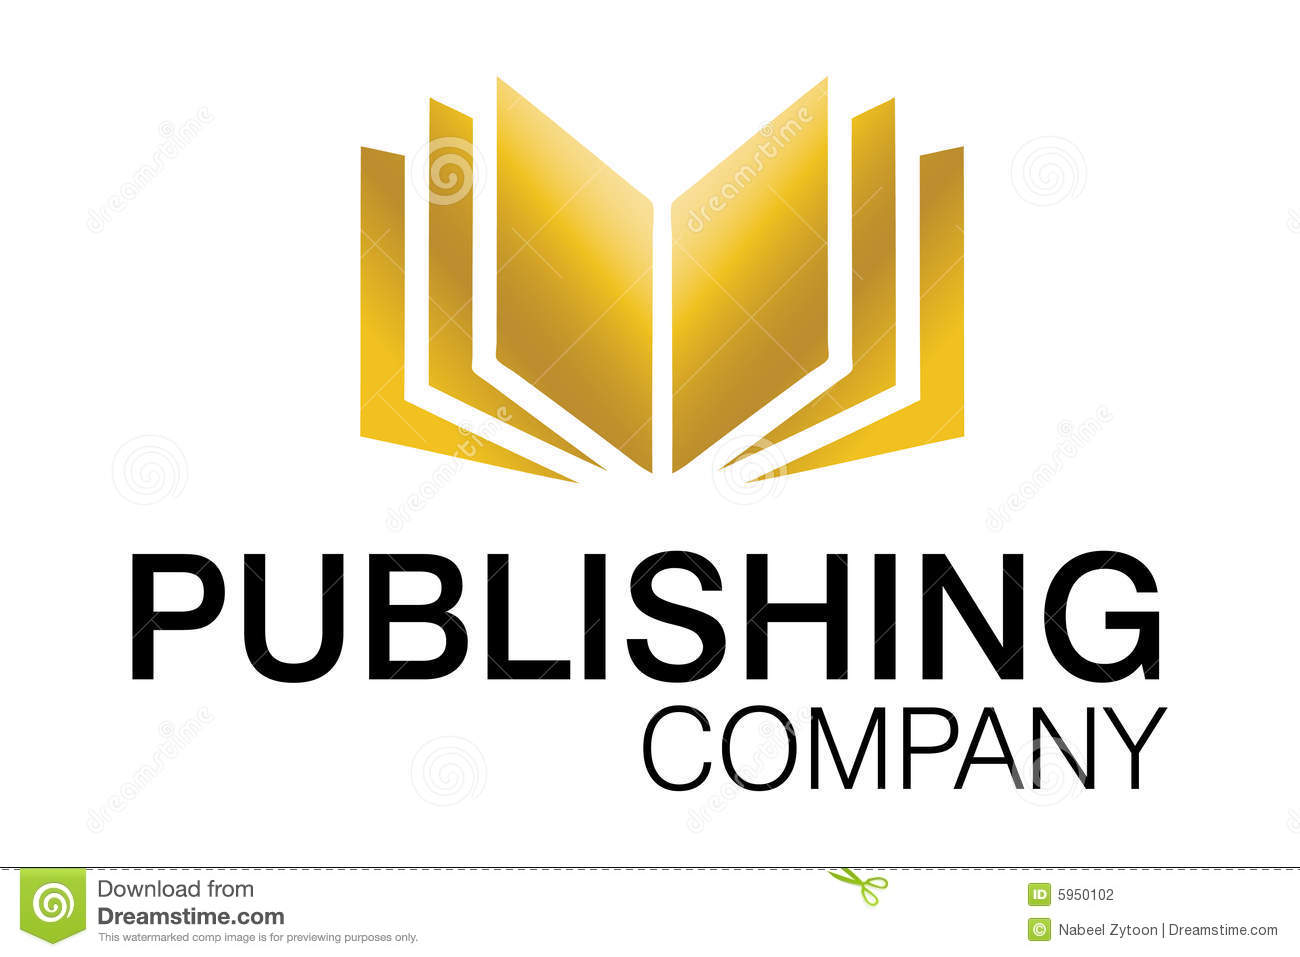 How to Get a Pen Publishing That'll Not Create